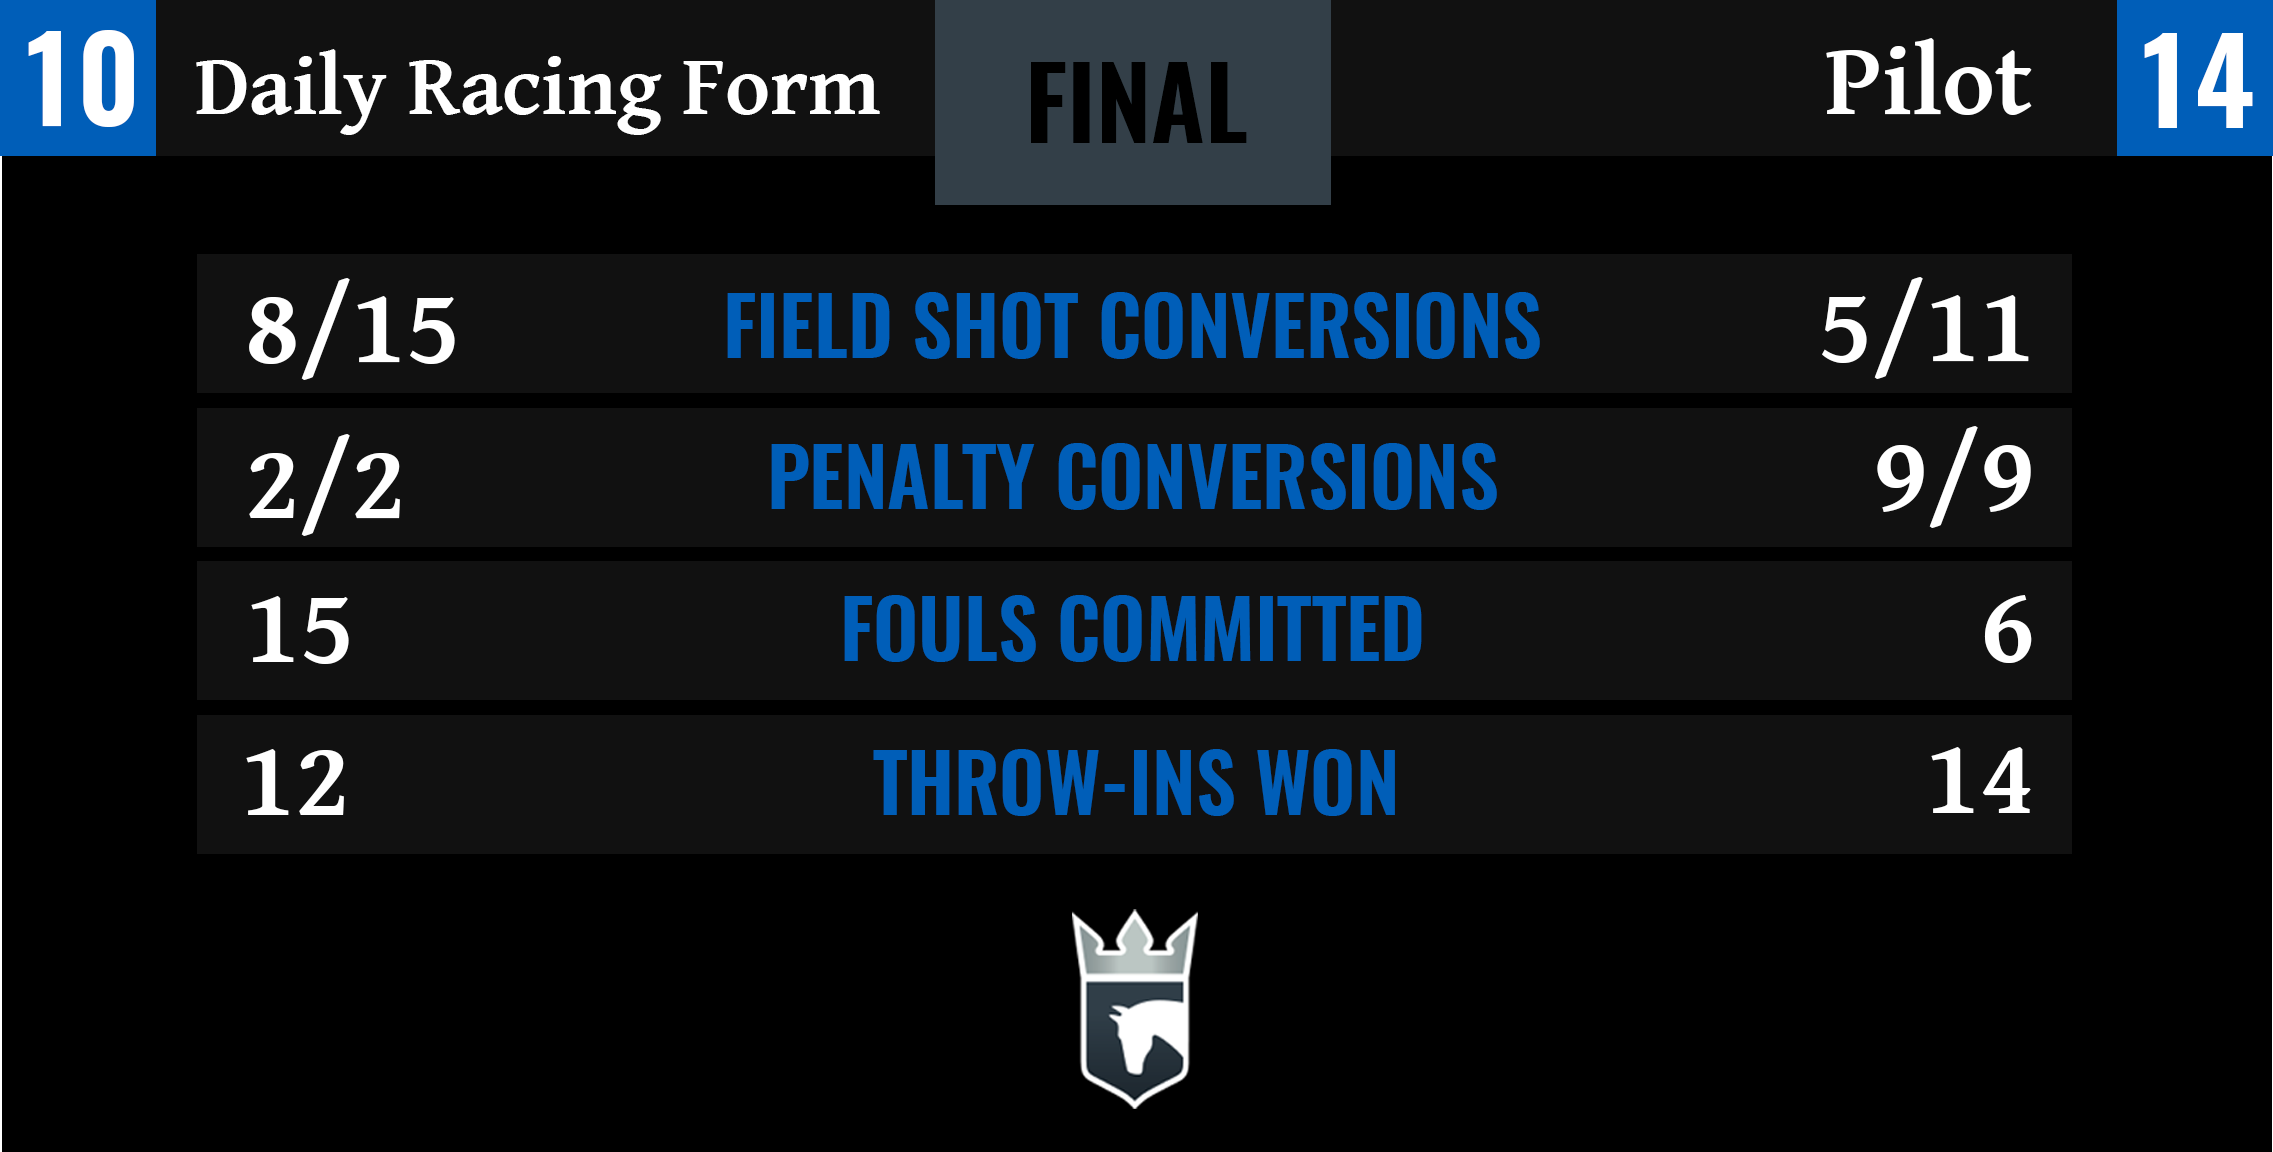 Daily Racing Form vs Pilot Final Stats-1